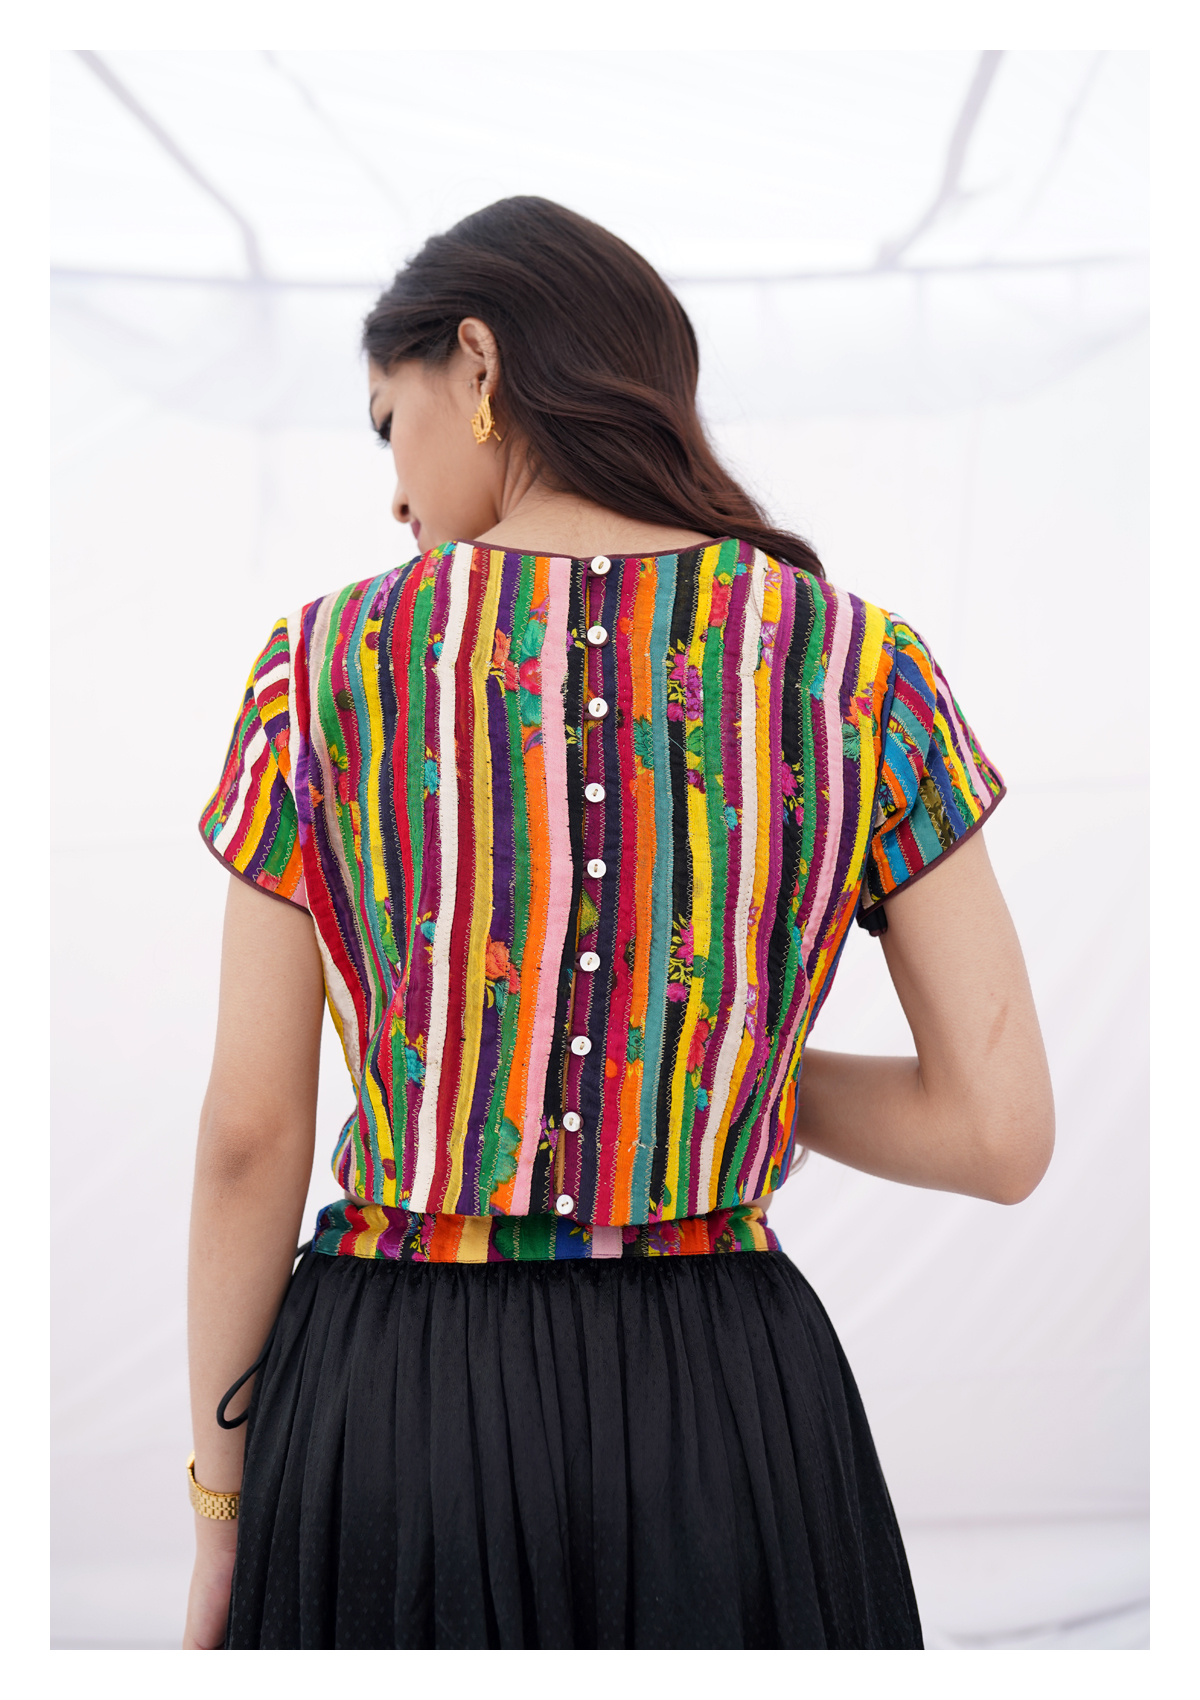 Ghamagham Textured Multicolor Crop Top